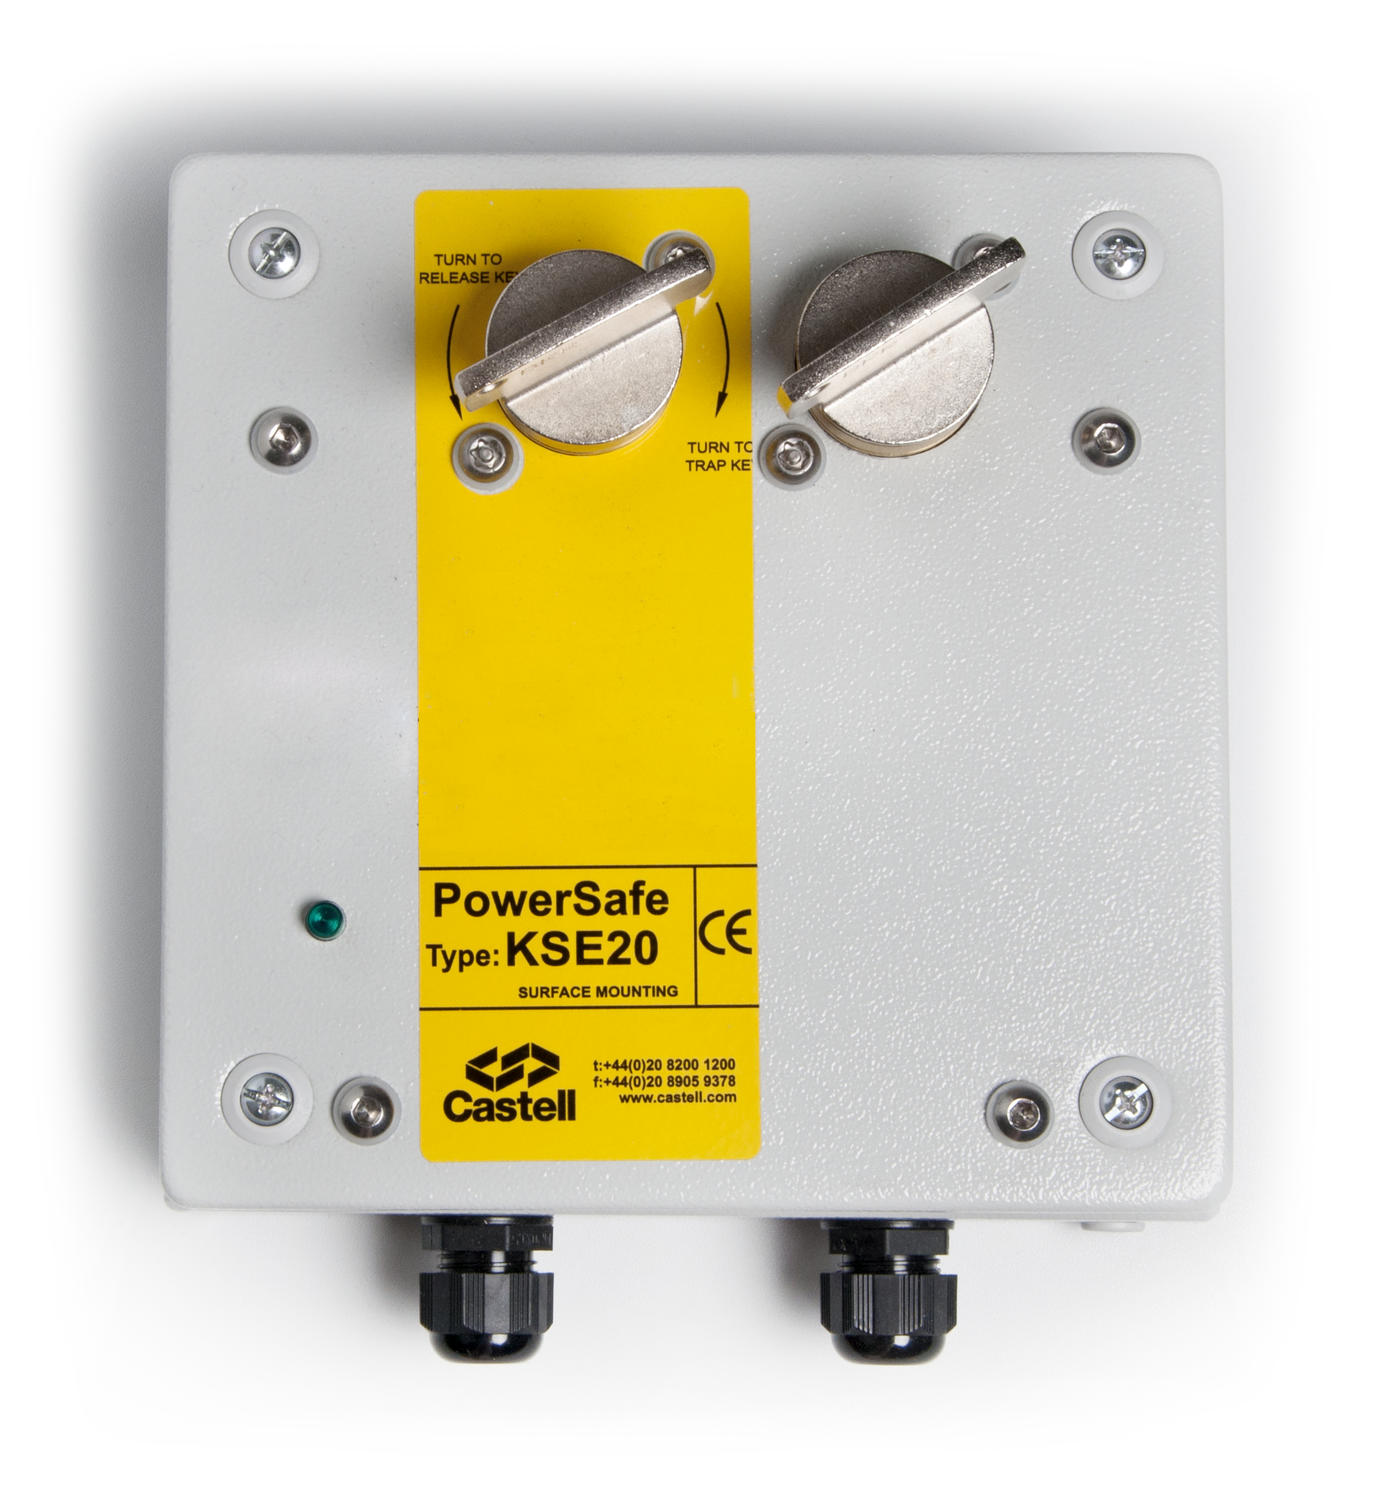 Multi-key powersafe electrical switch KSE20